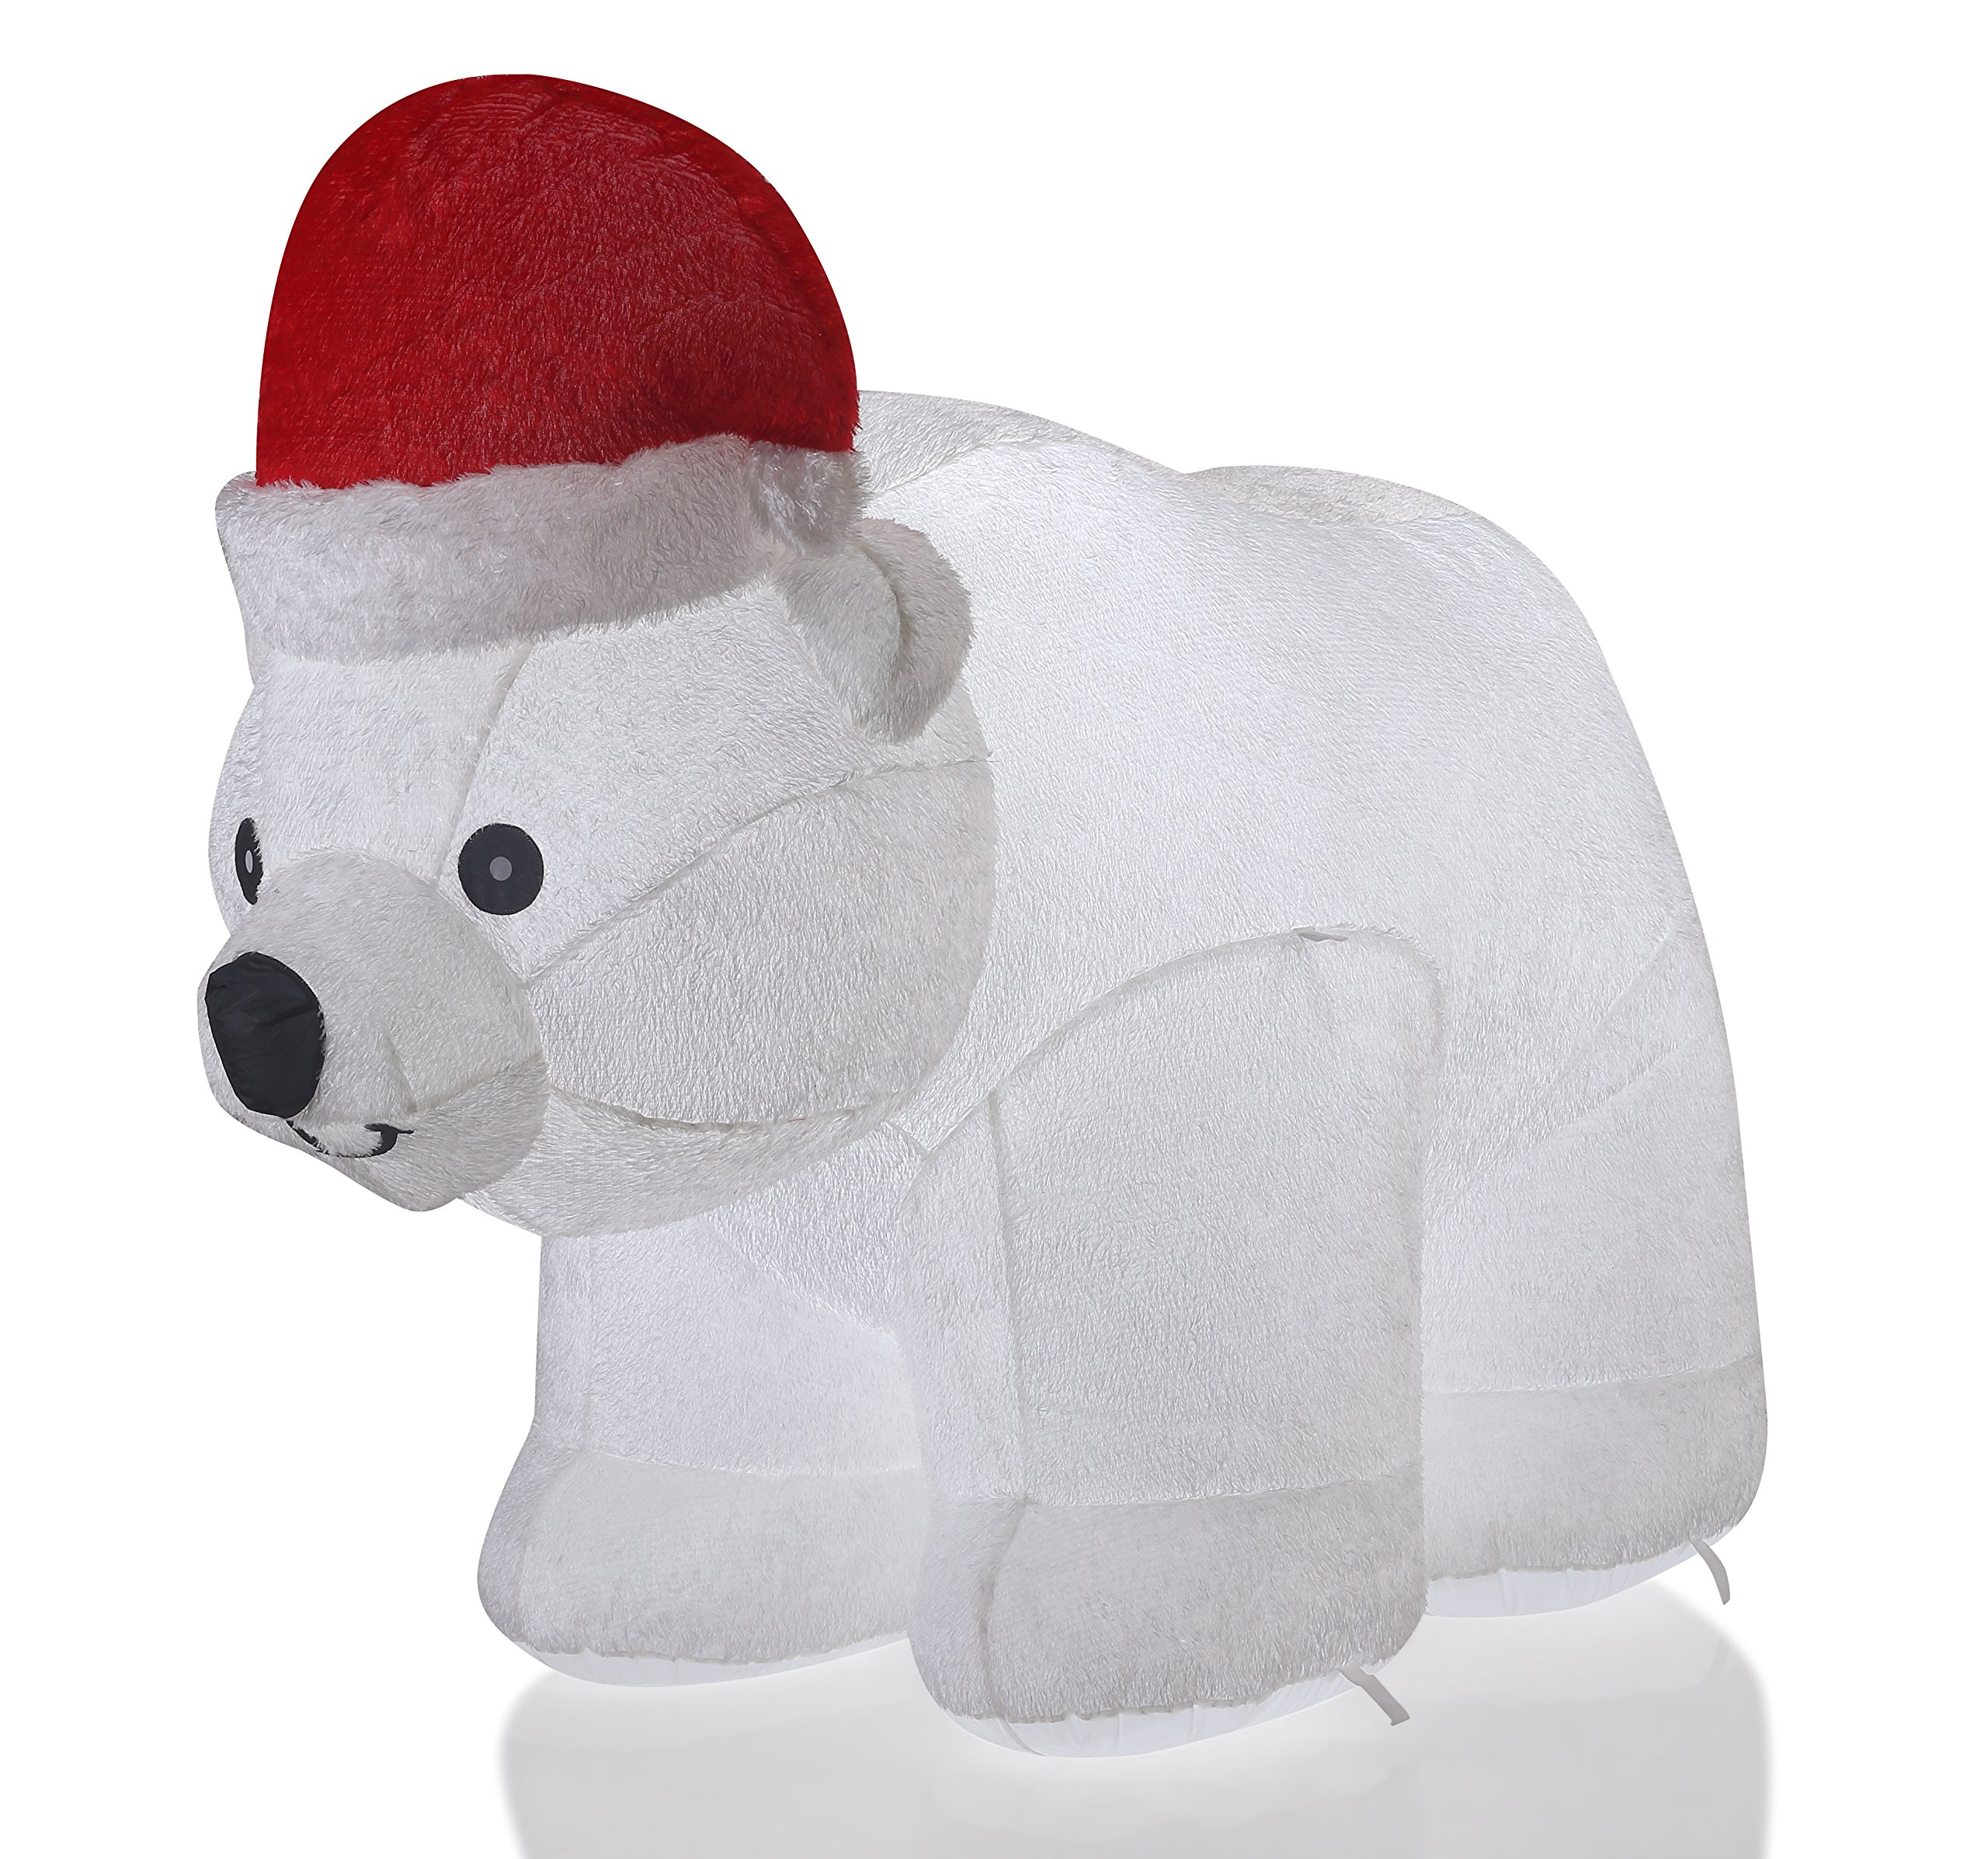 VIDAMORE 6.5 Foot Large Inflatable X-Mas Polar Bear LED Lighted Inflatables Outdoor Holiday Yard Lawn Decorations by Vidamore (Image #1)